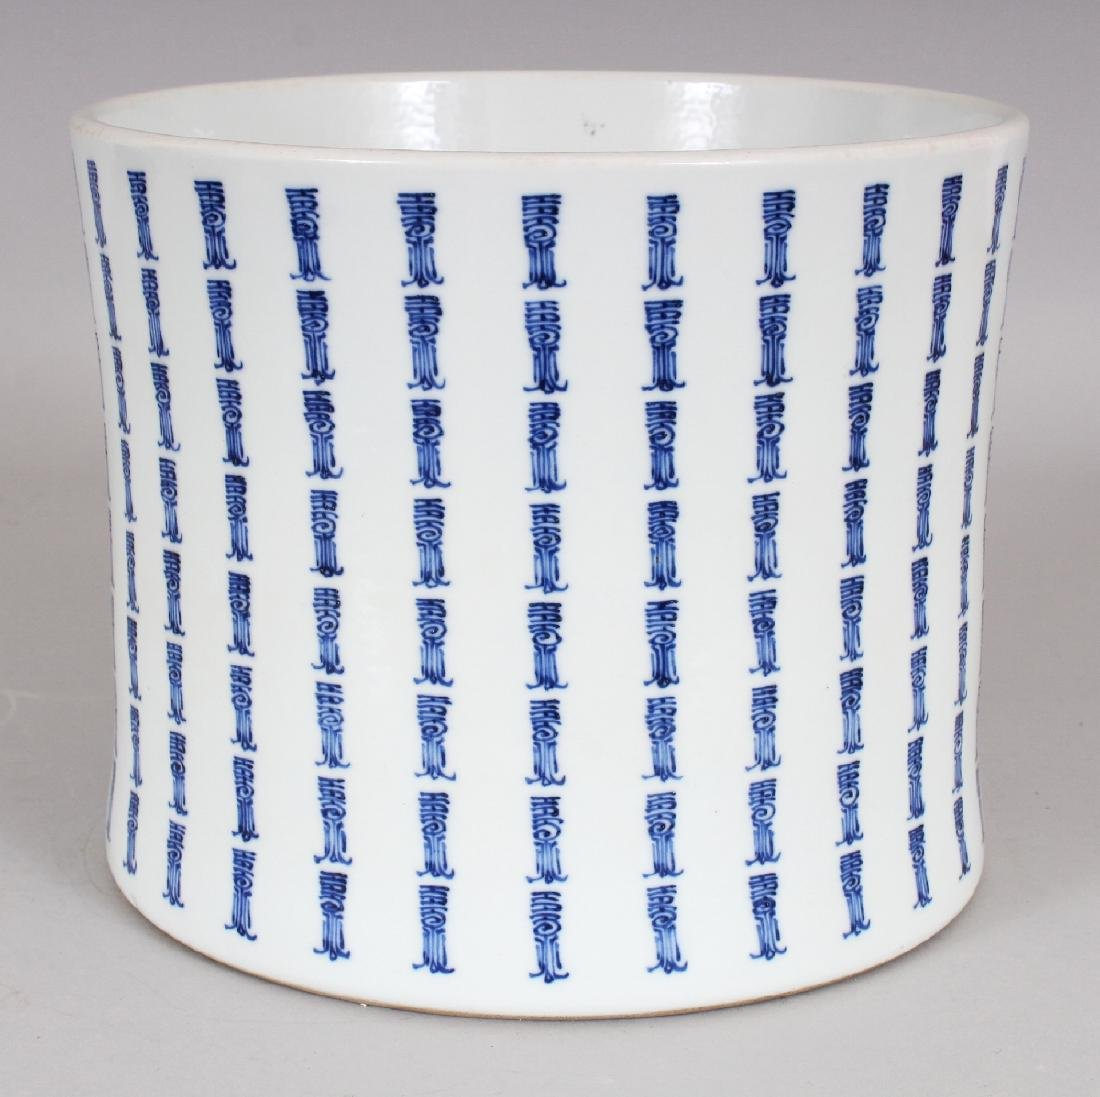 A LARGE GOOD QUALITY CHINESE WAISTED PORCELAIN BITONG